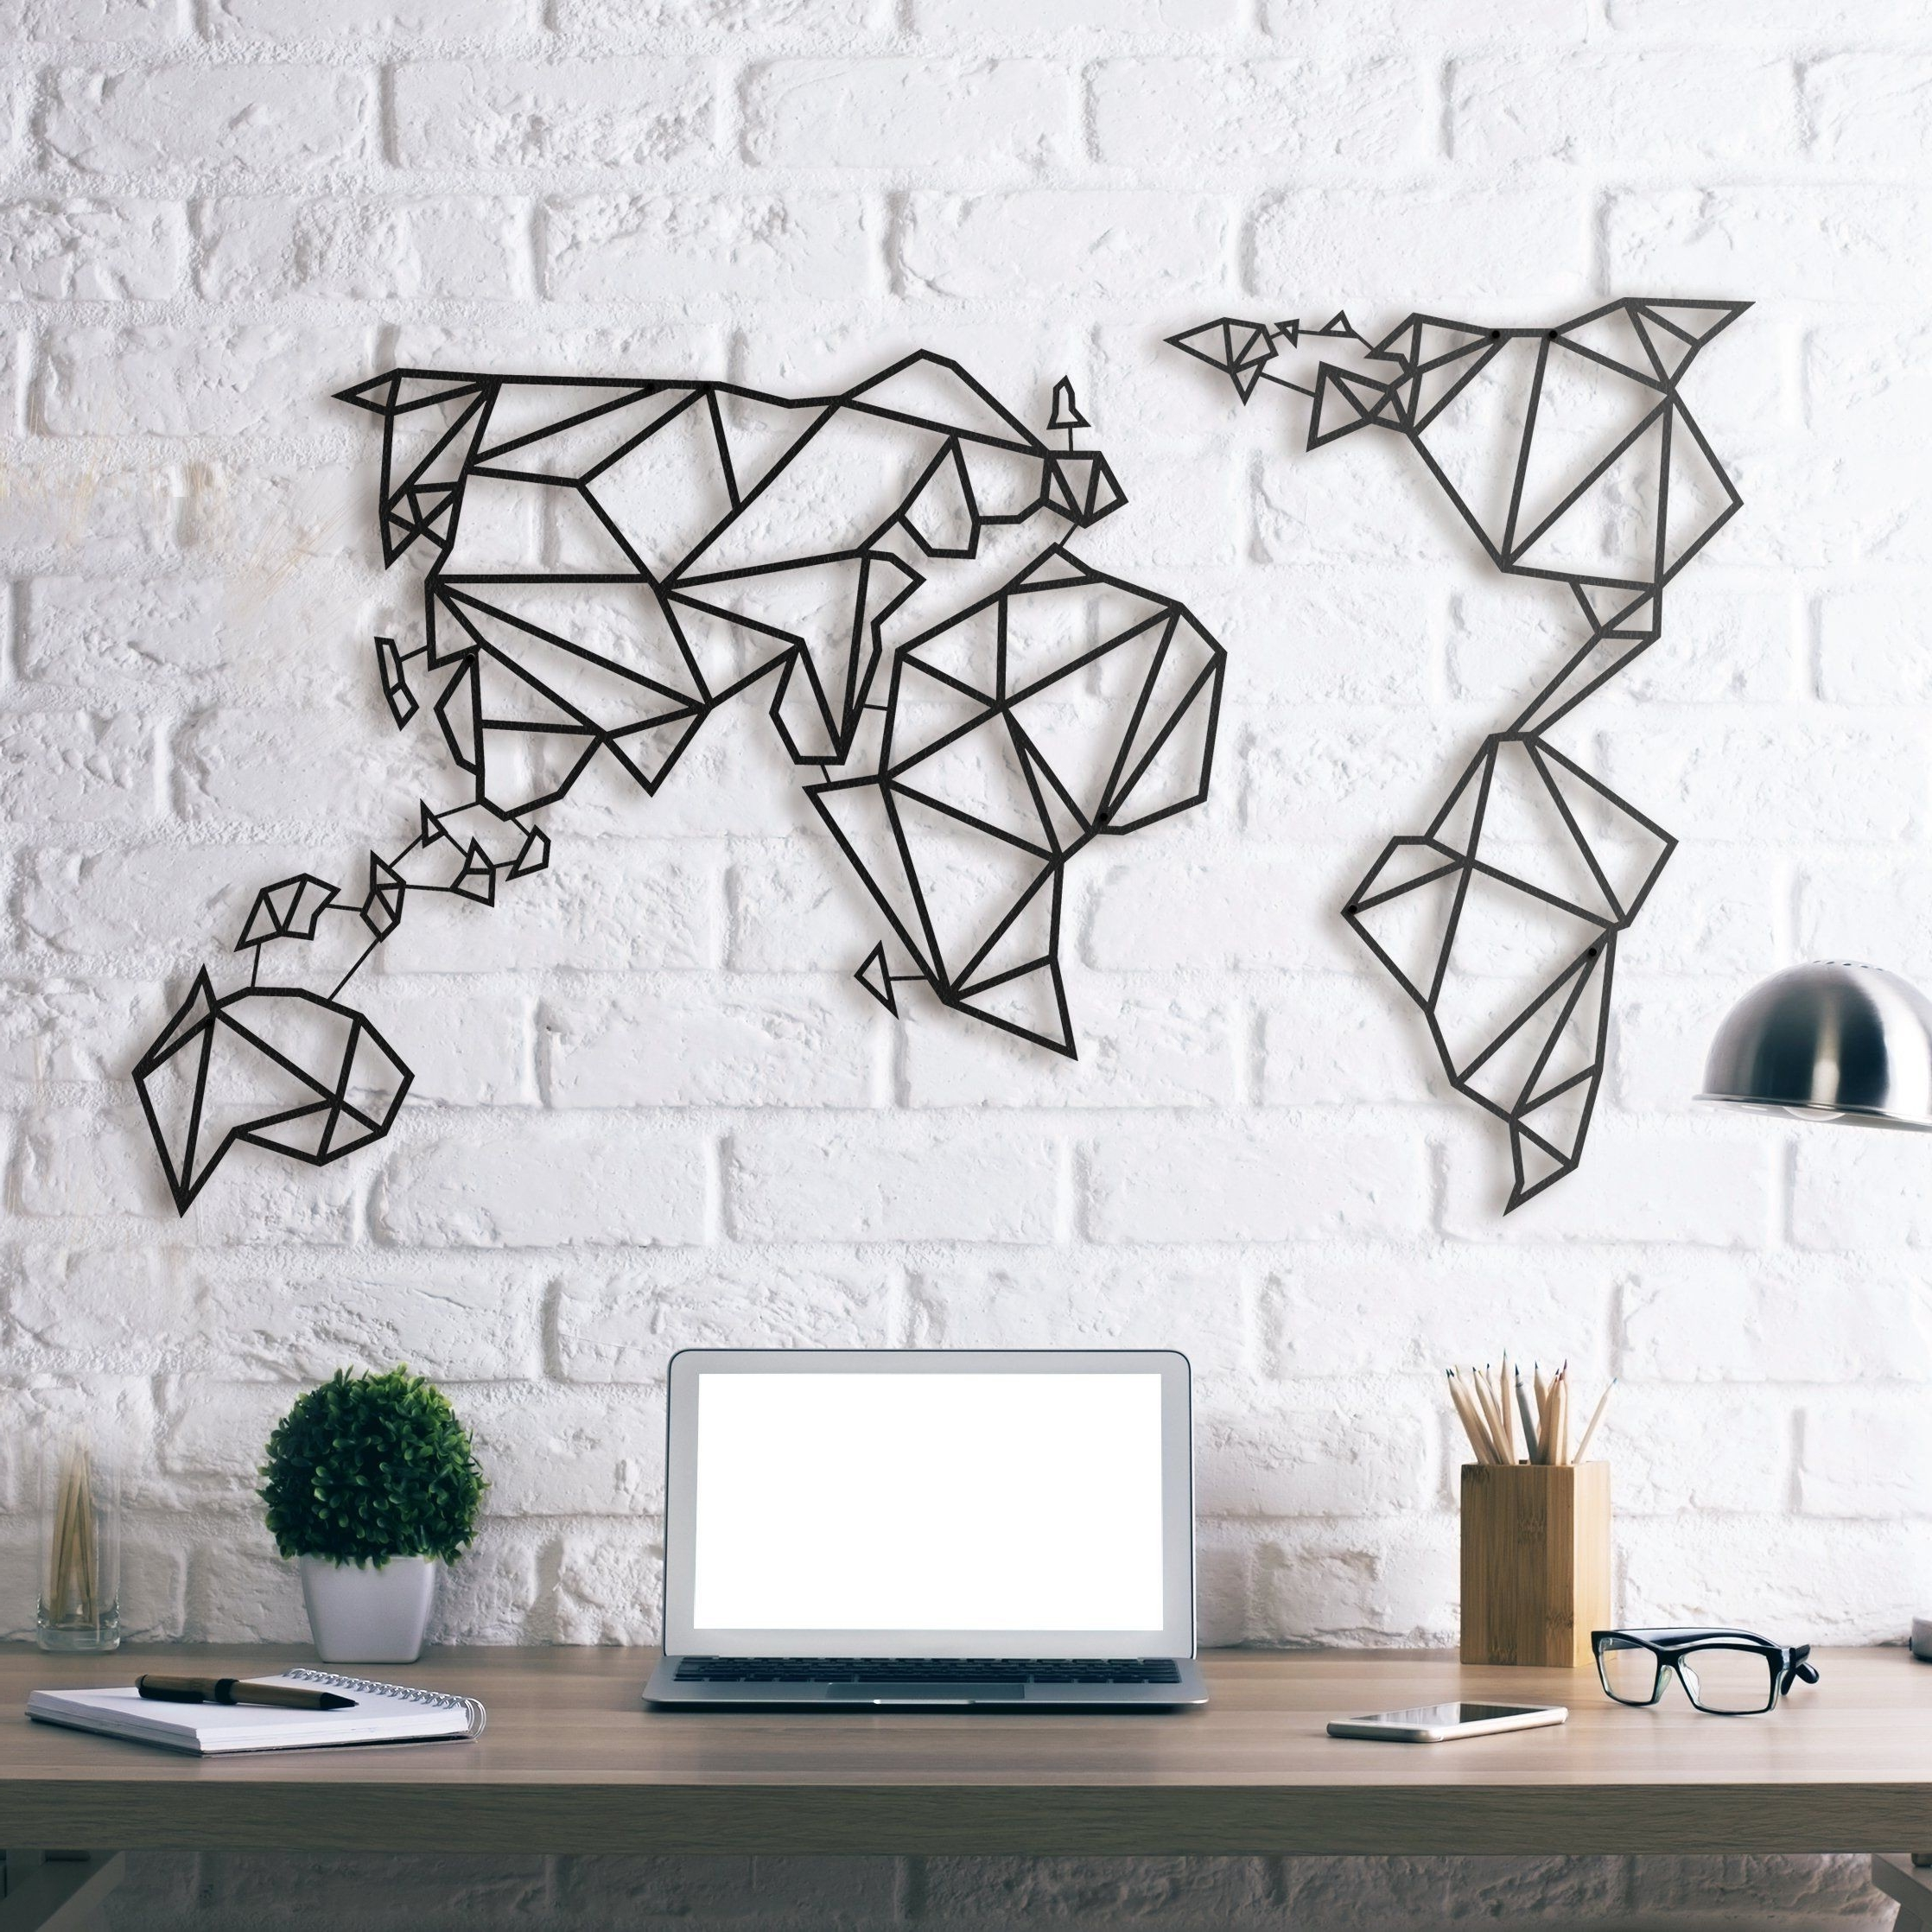 2017 World Map Wall Decor – World Maps Collection Within Maps Wall Art (Gallery 3 of 20)